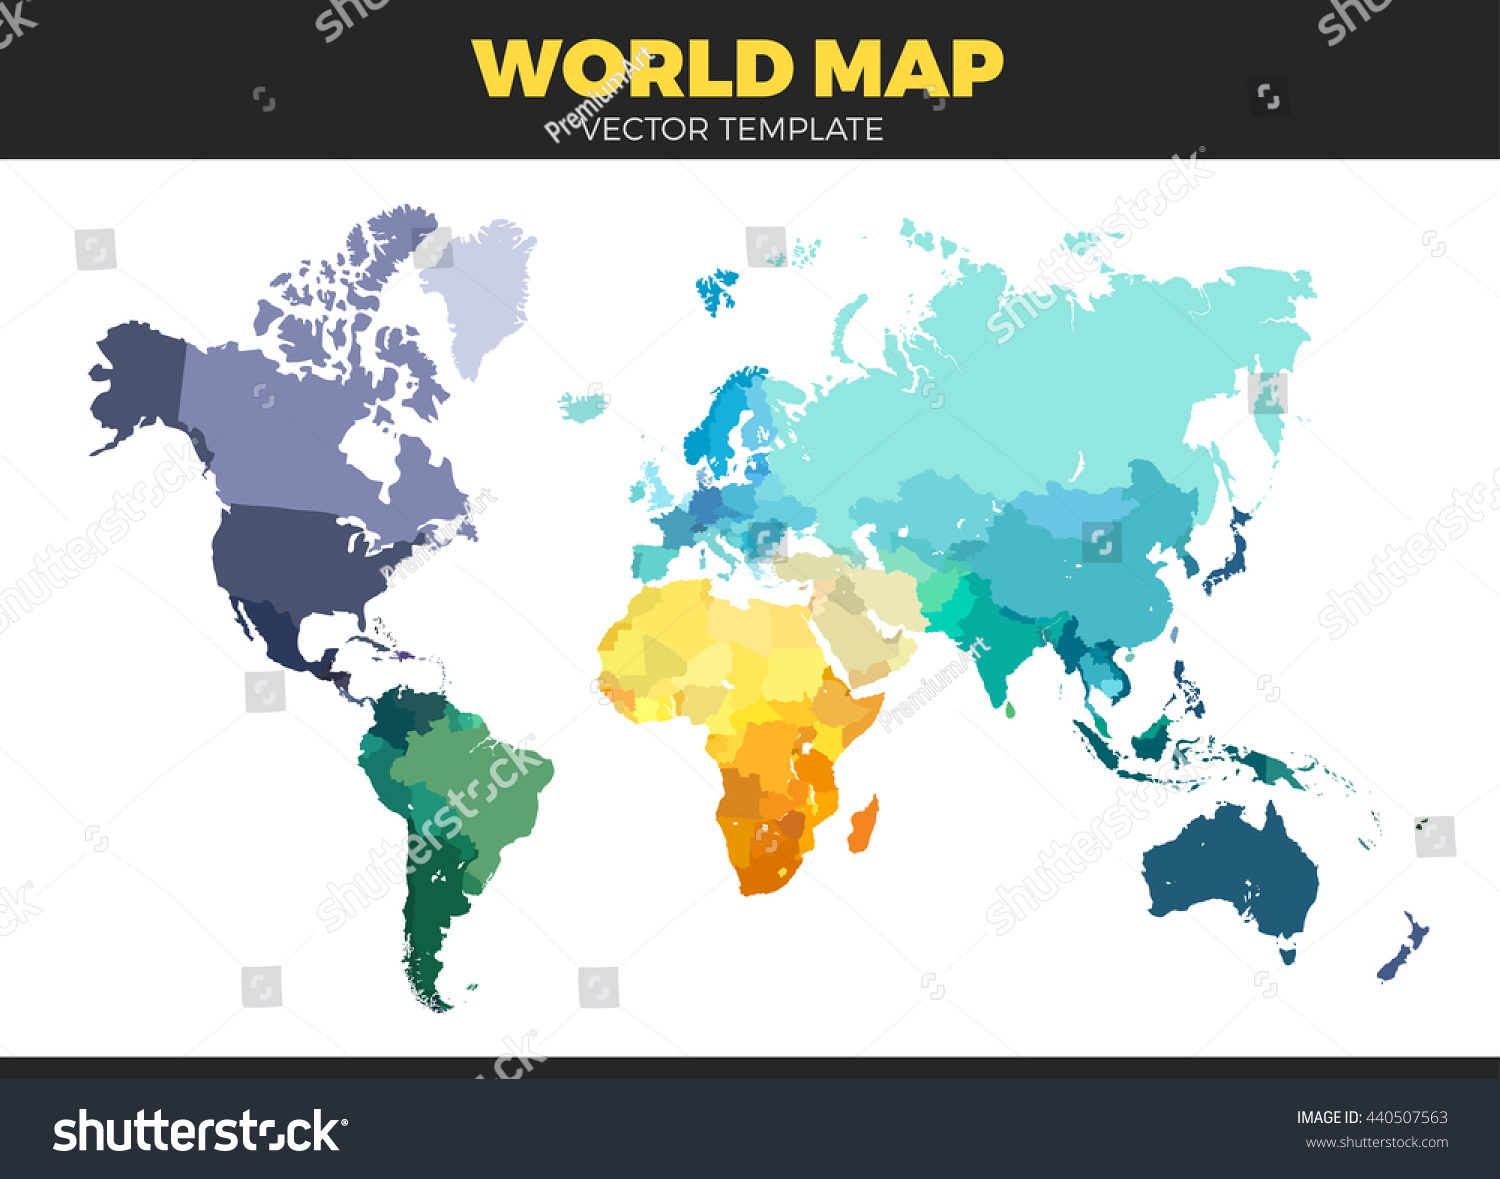 Color world map vector illustration empty vectores en stock color world map vector illustration empty template without country names text isolated on white gumiabroncs Images